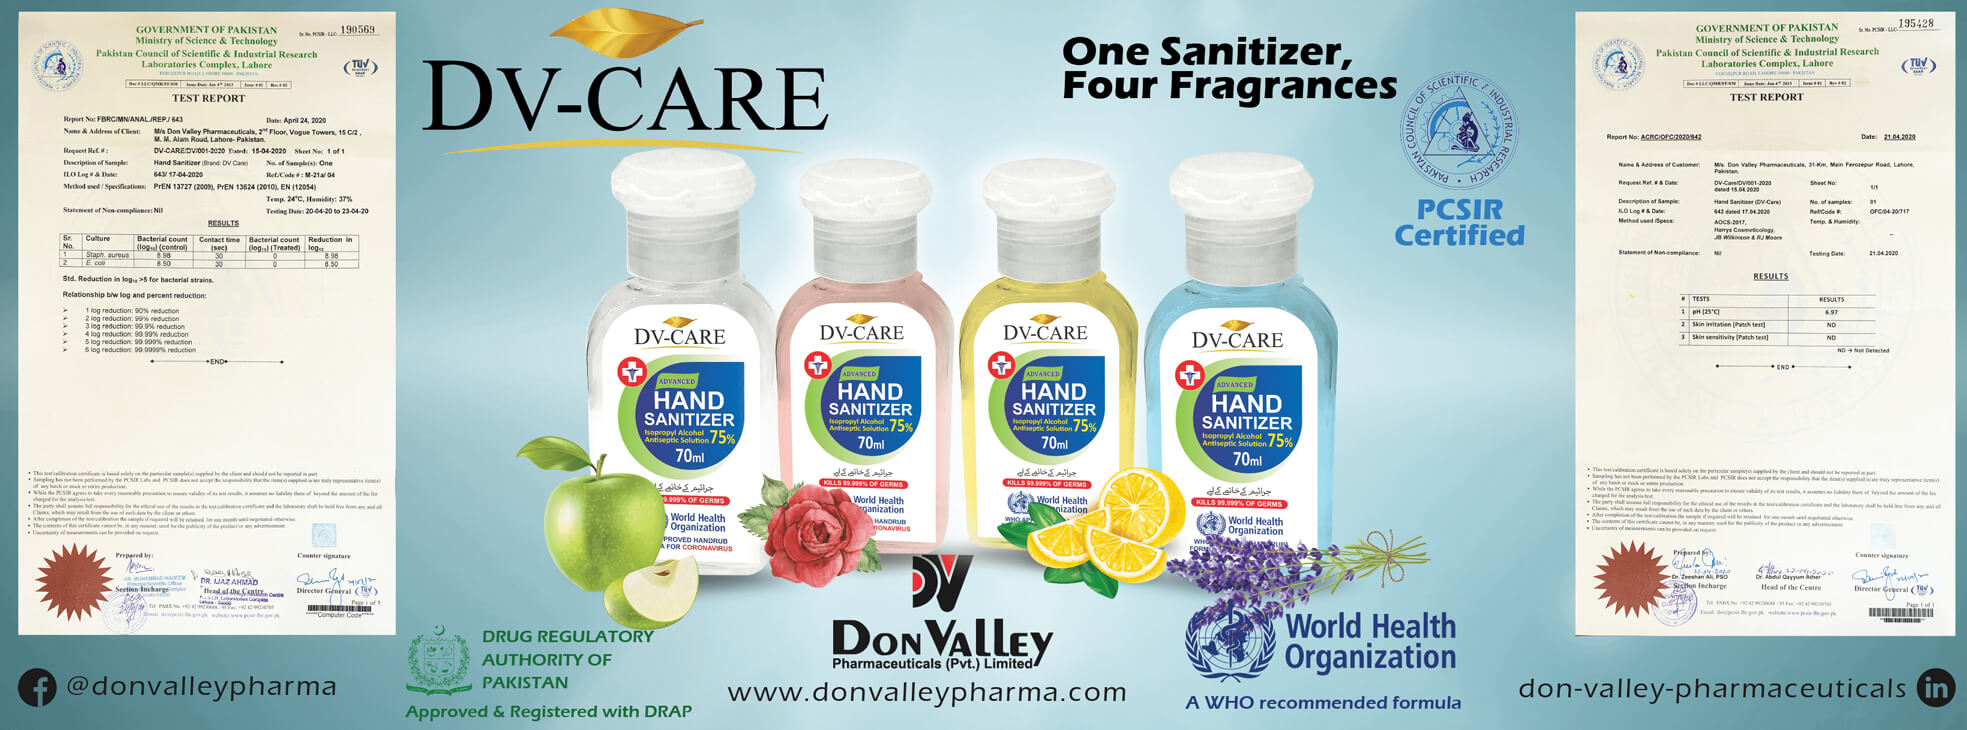 Dv-Care - by Don Valley